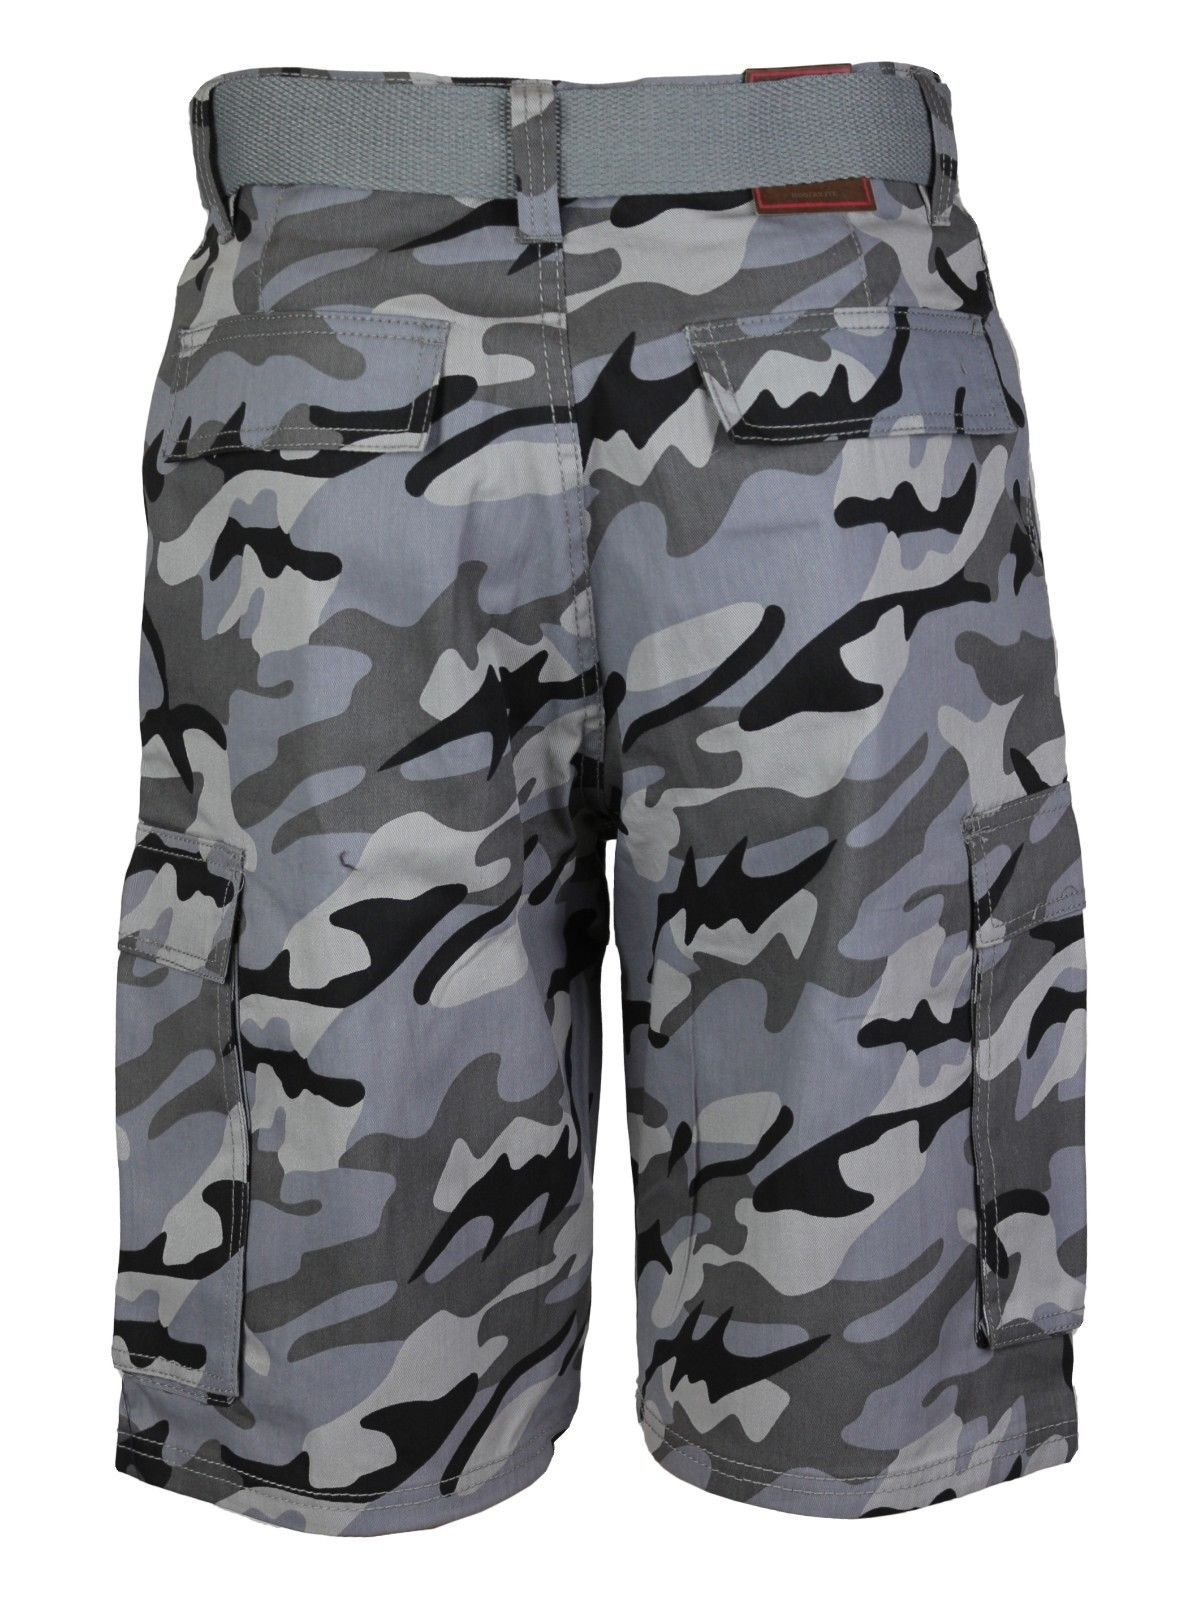 Men-039-s-Tactical-Combat-Military-Army-Cotton-Twill-Camo-Cargo-Shorts-With-Belt thumbnail 17